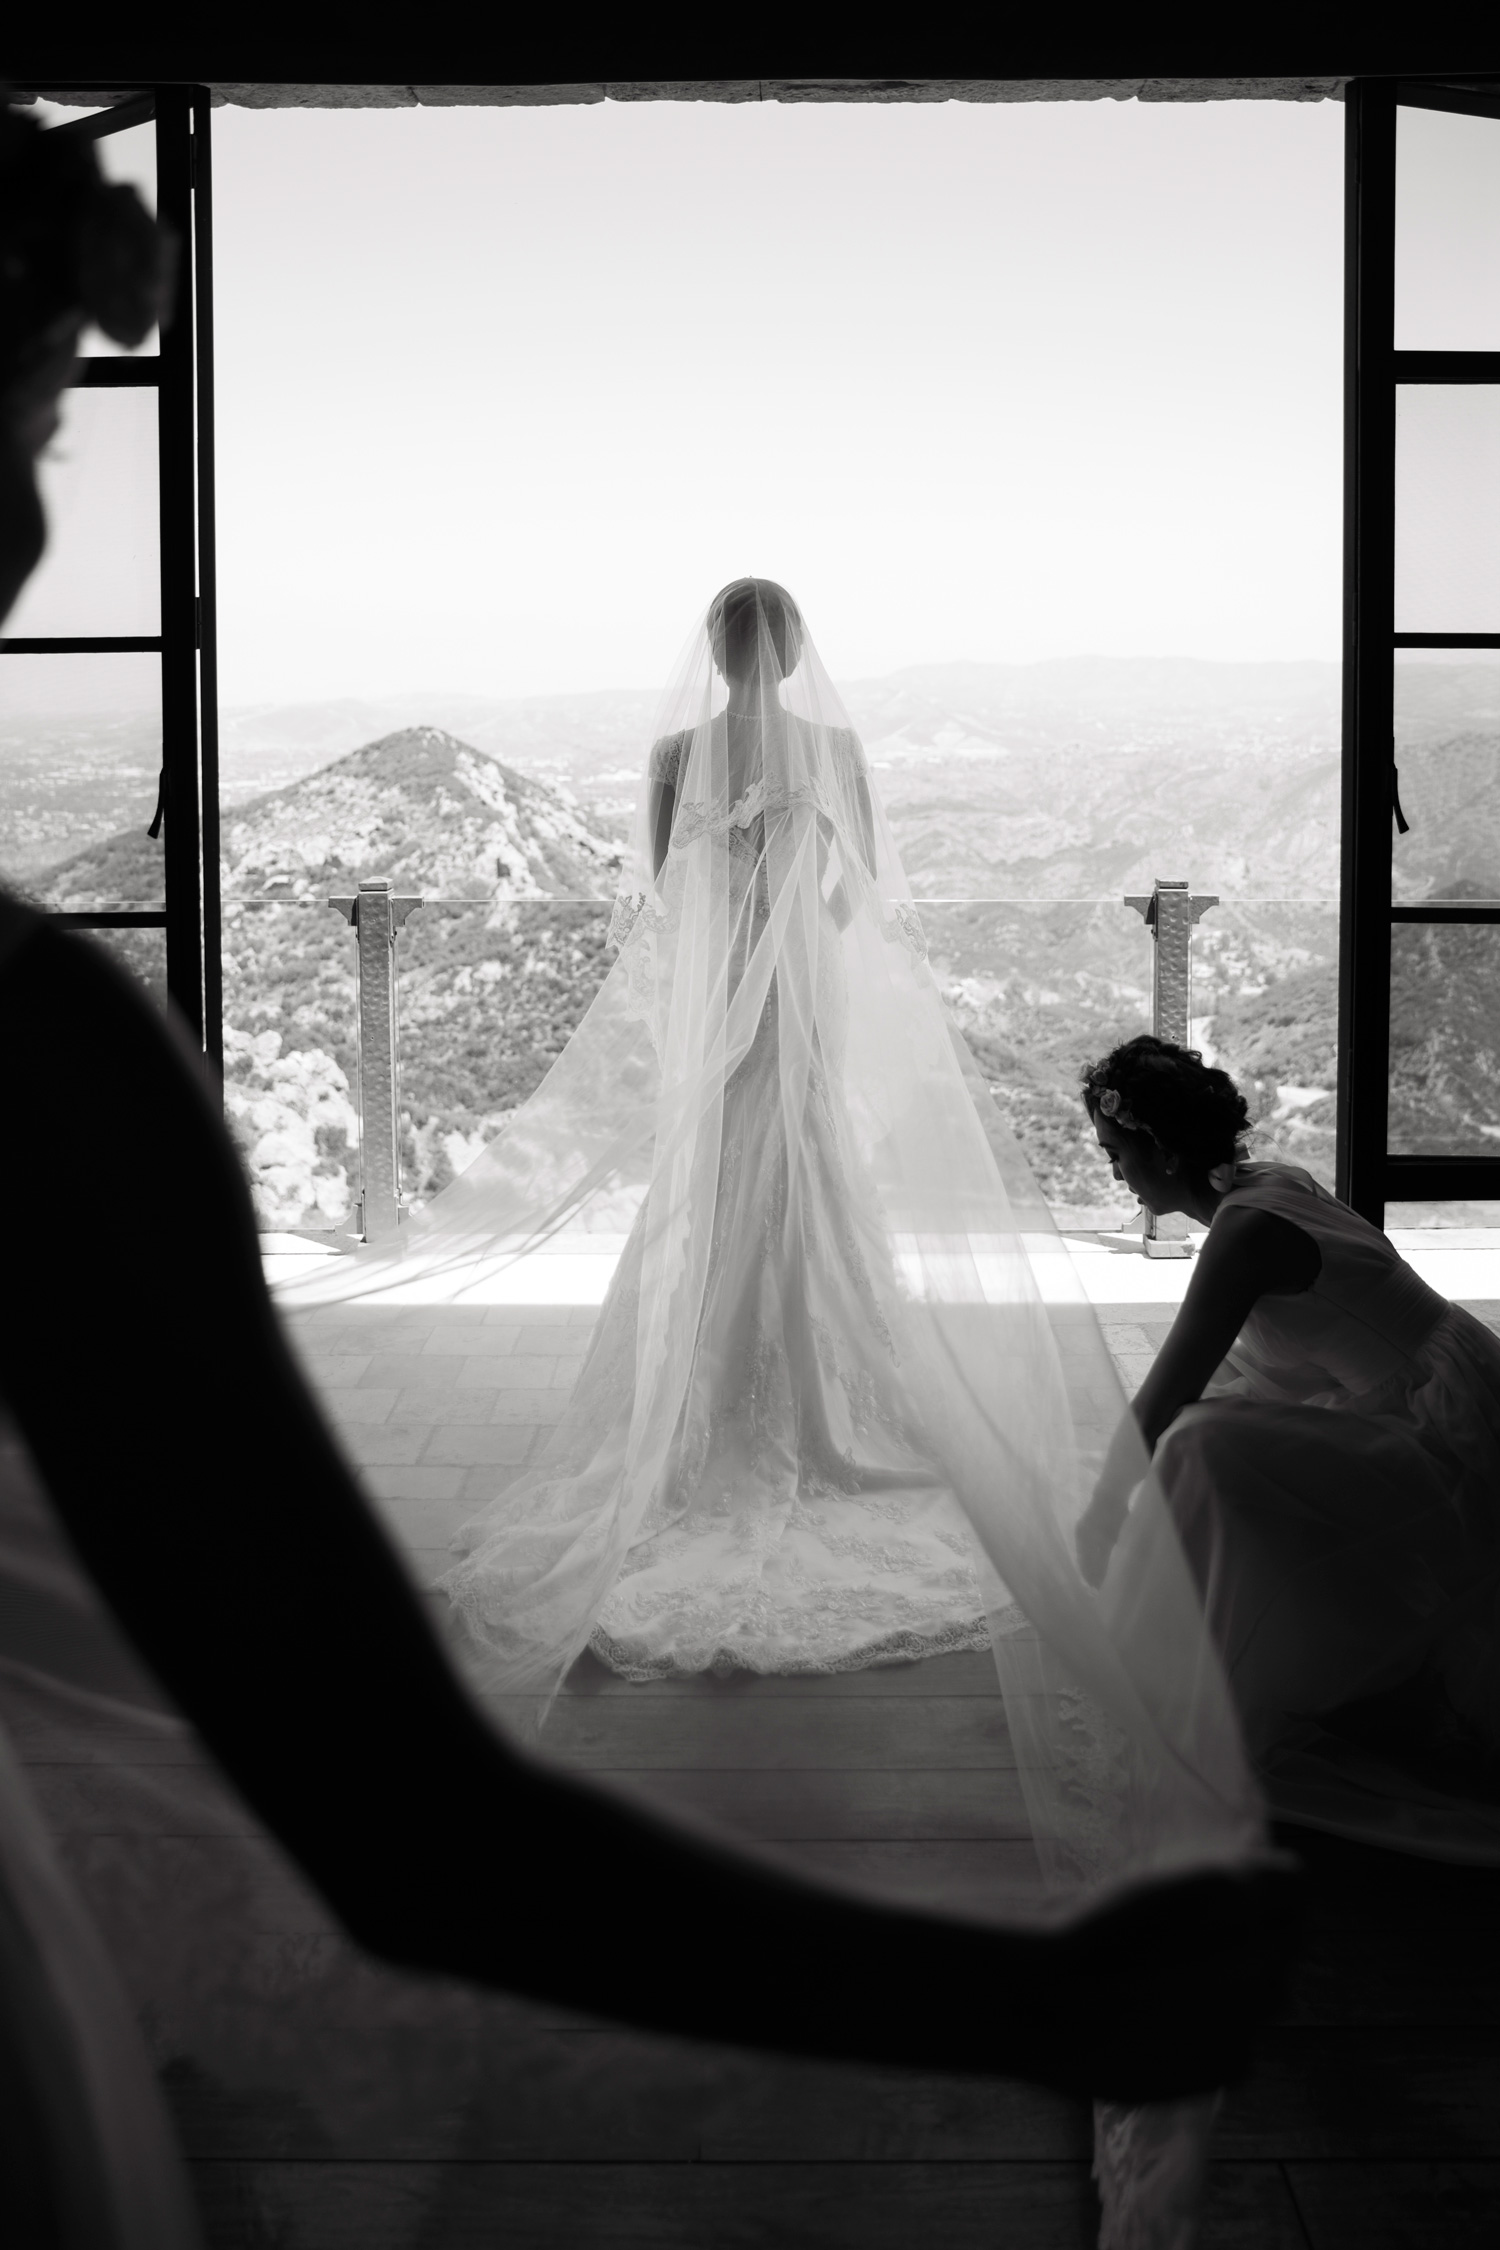 Black and white photo of bride looking out window balcony wedding photos